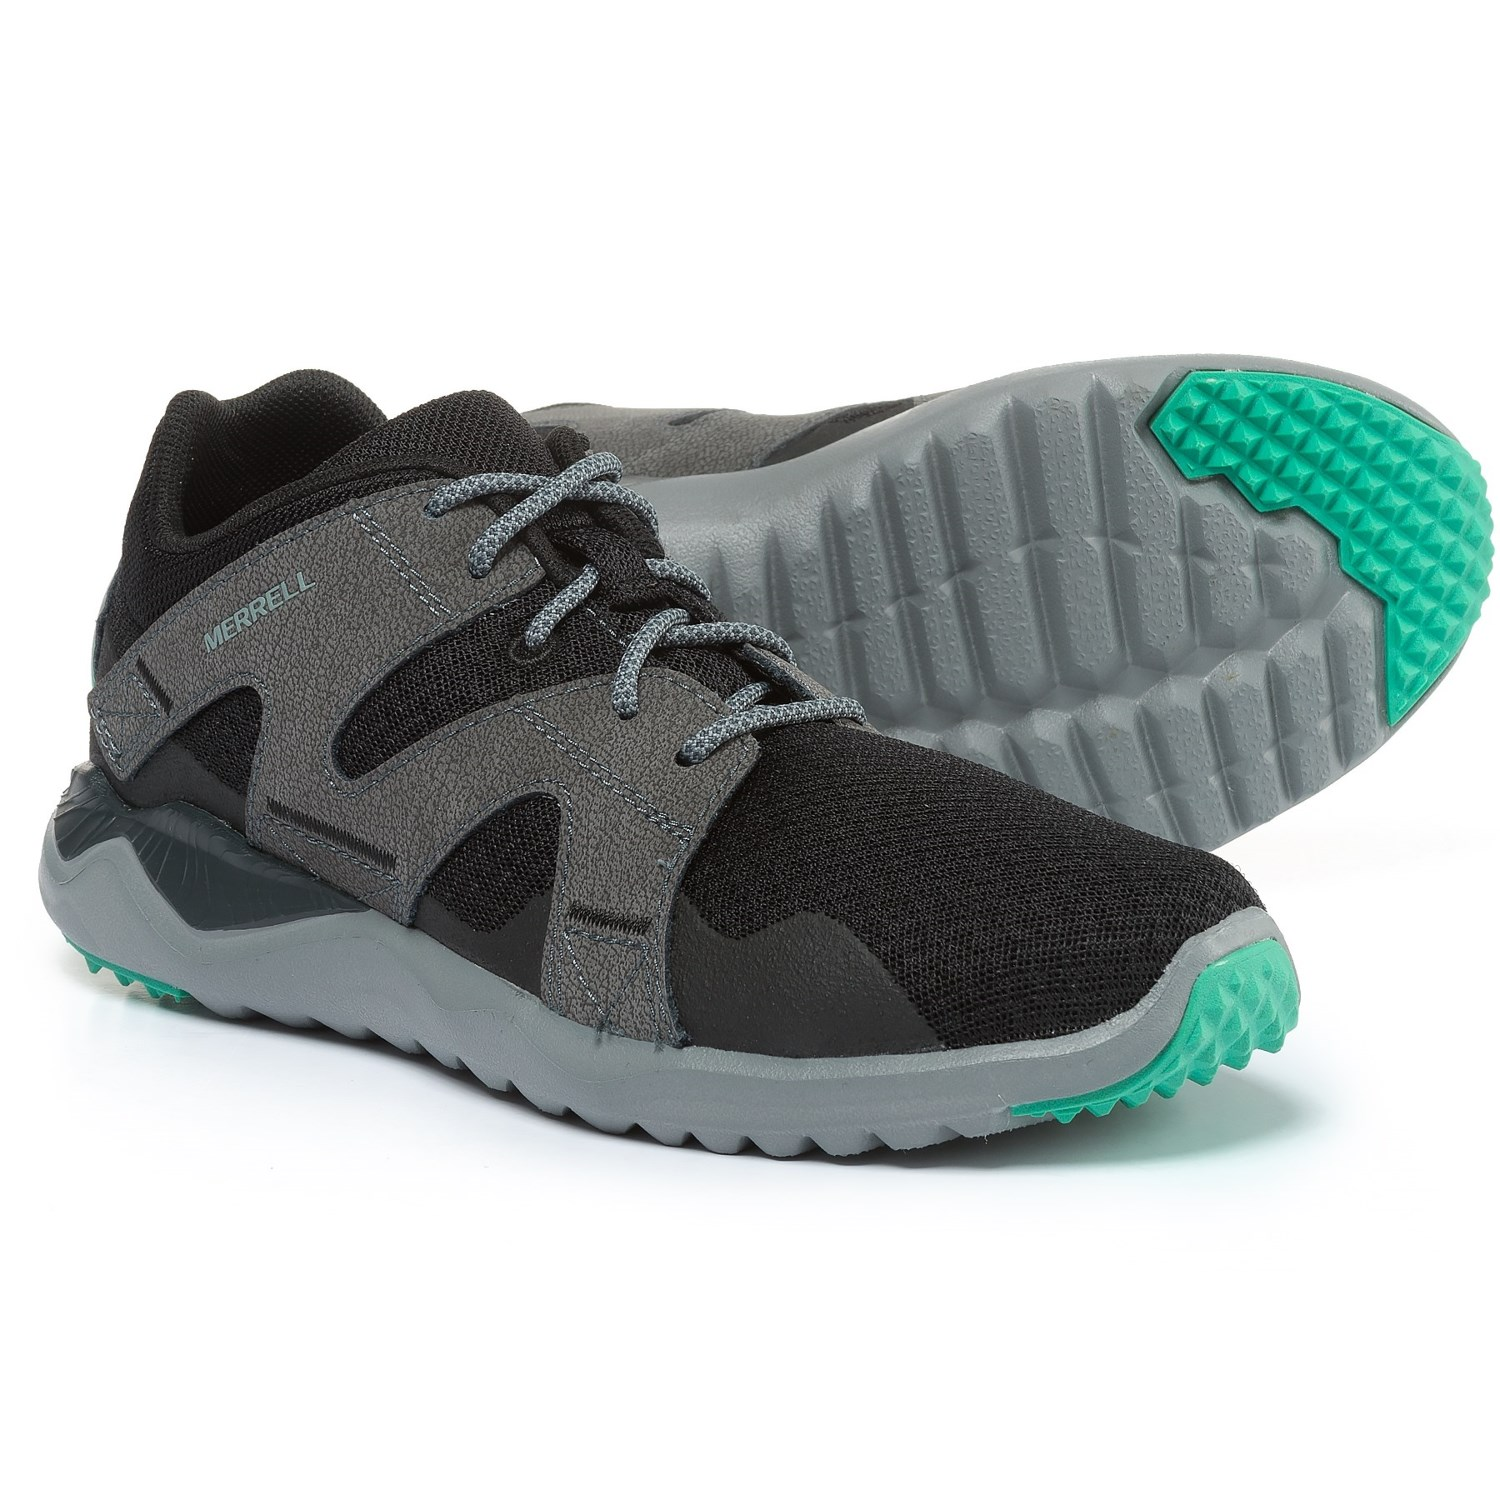 Merrell 1Six8 Sedona Sage Lace-Up Sneakers (For Women) in Mesh Black